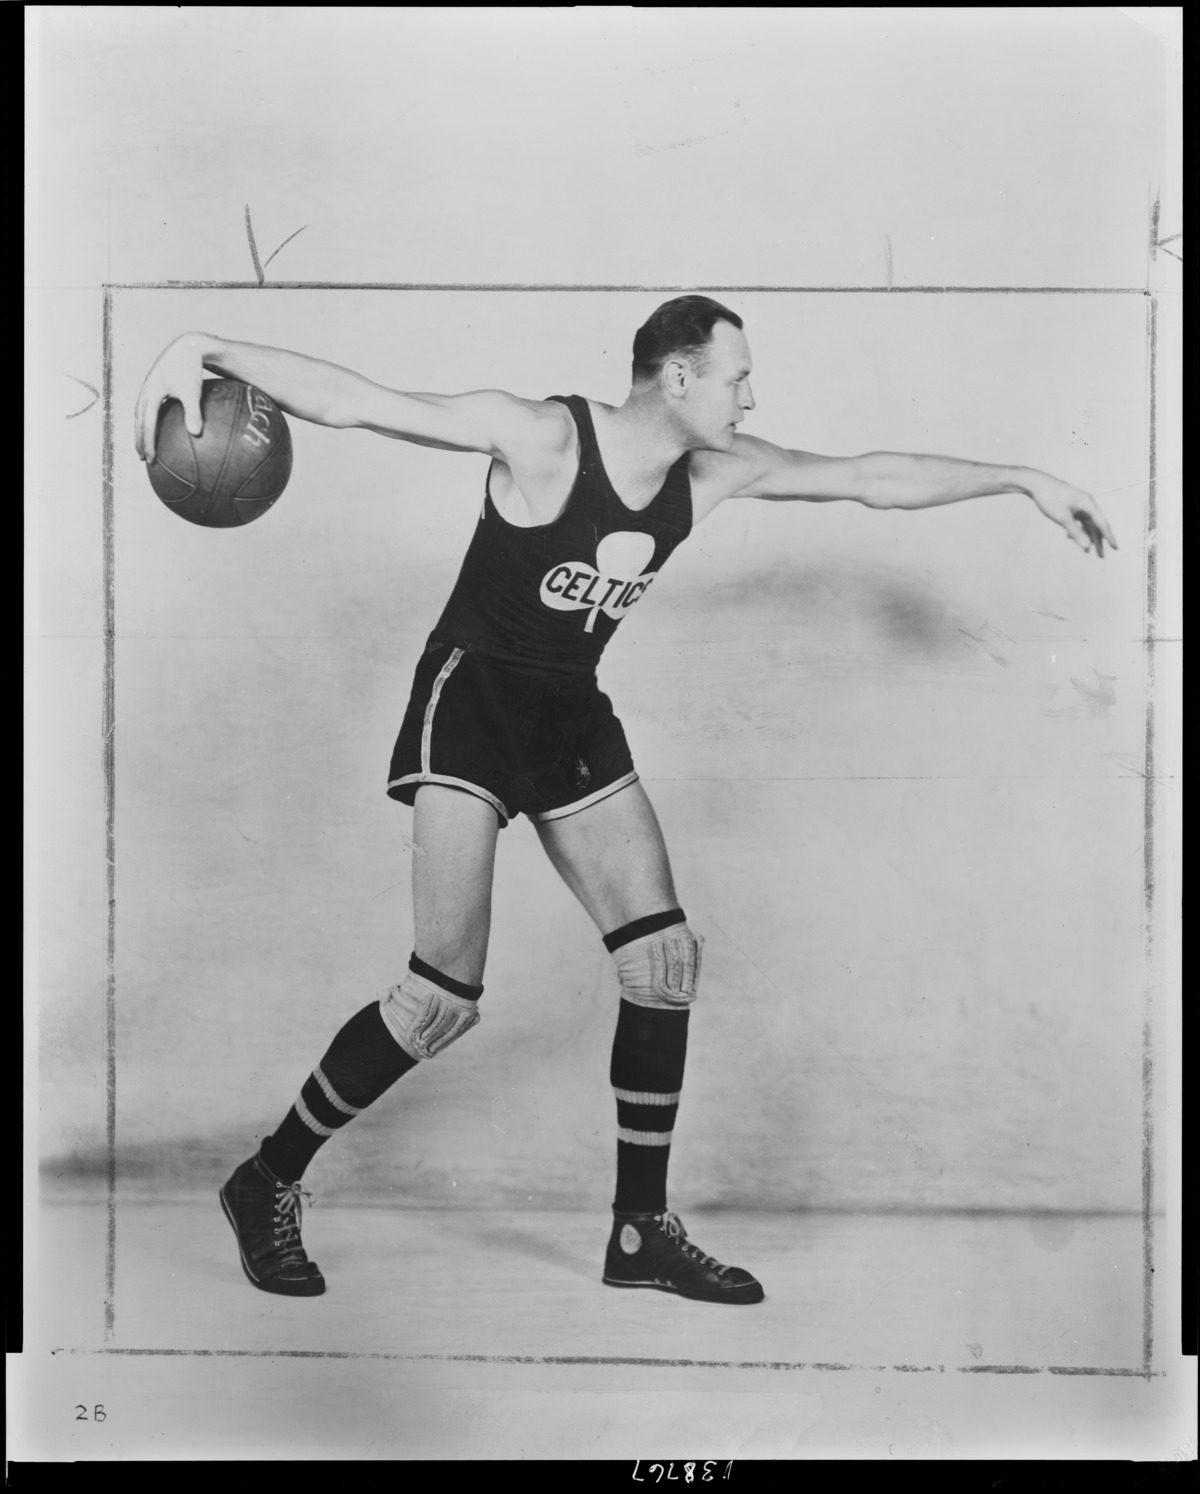 Joe Lapchick